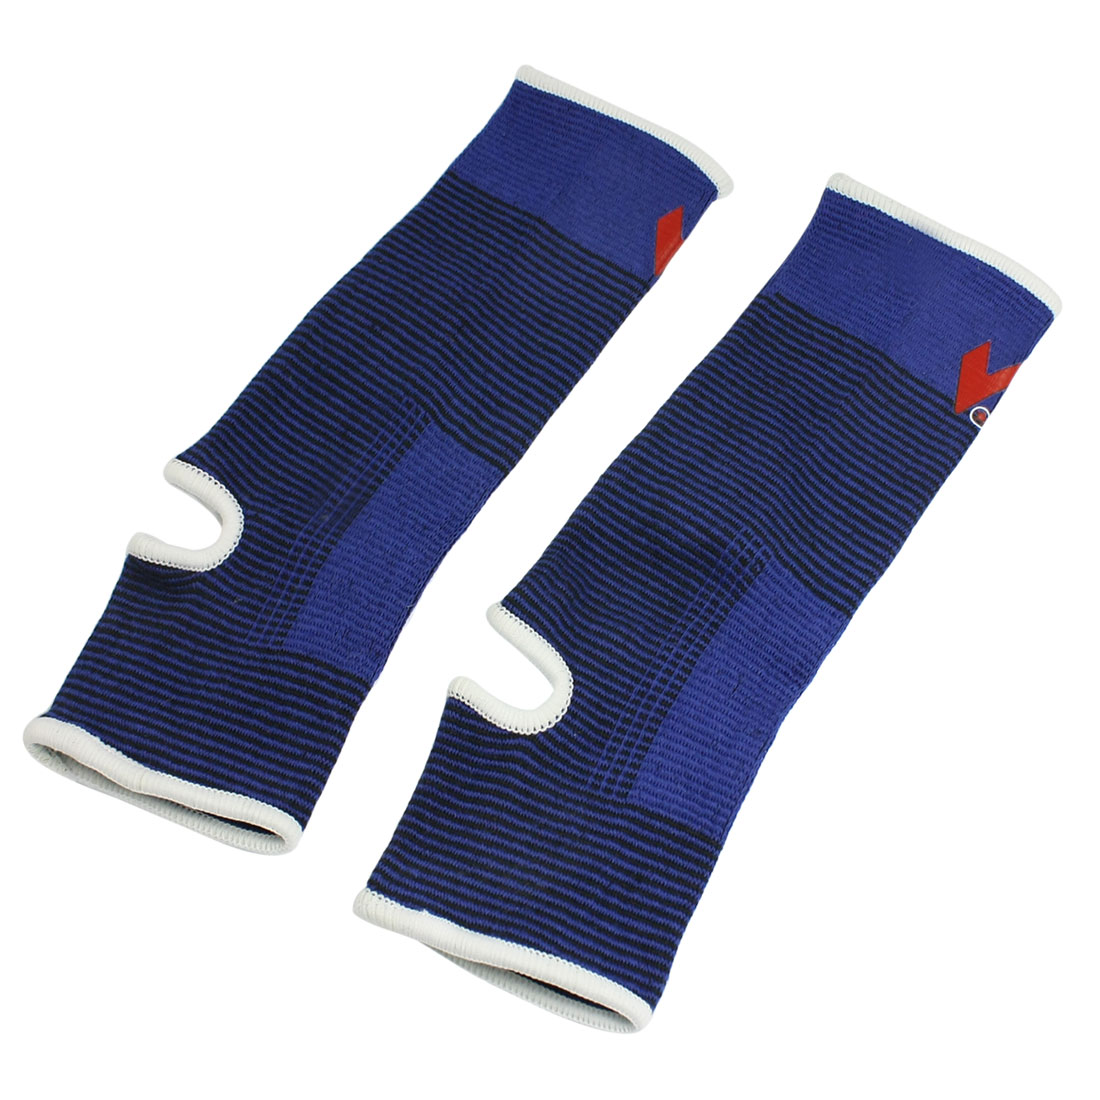 2 Pcs Sports Black Blue Pinstriped Elastic Ankle Support Protectors